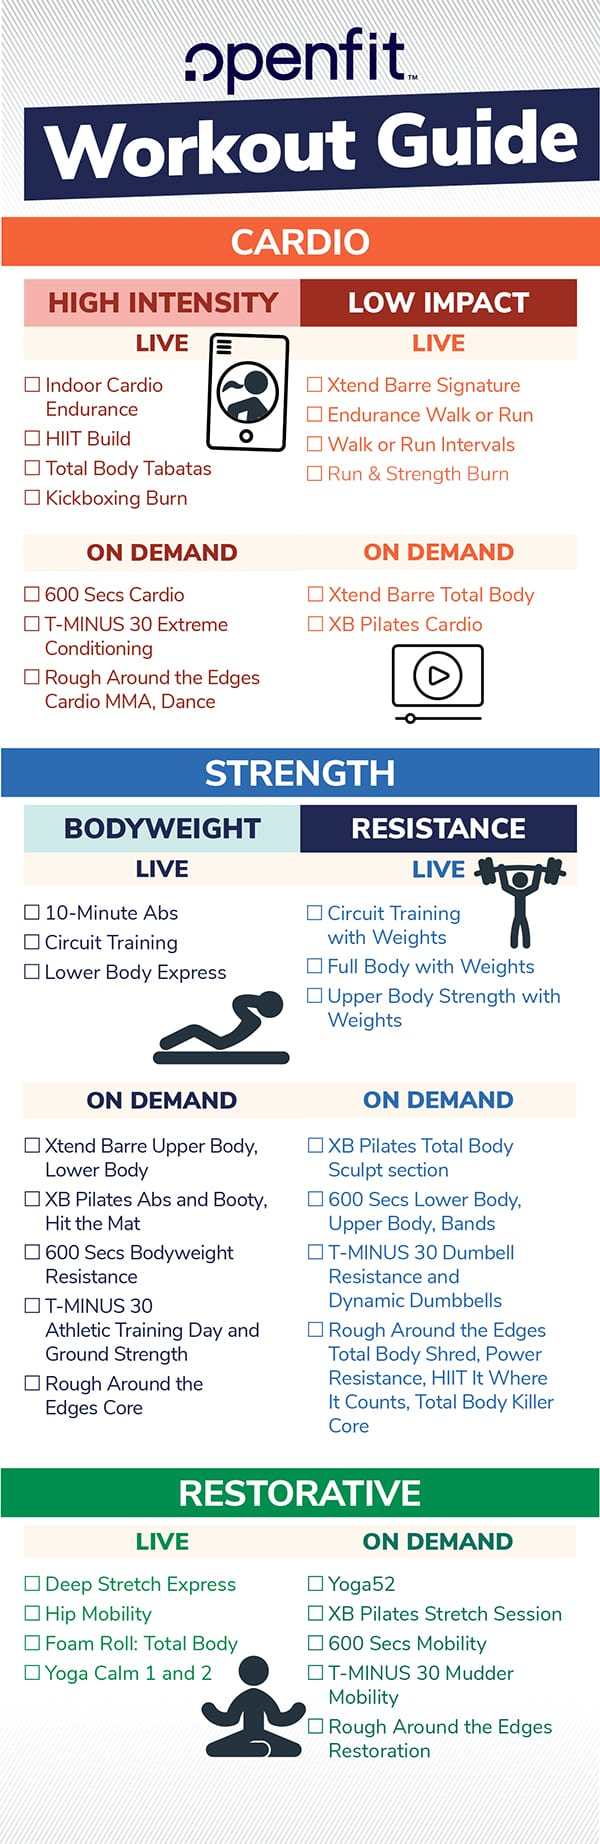 Openfit Workout Guide